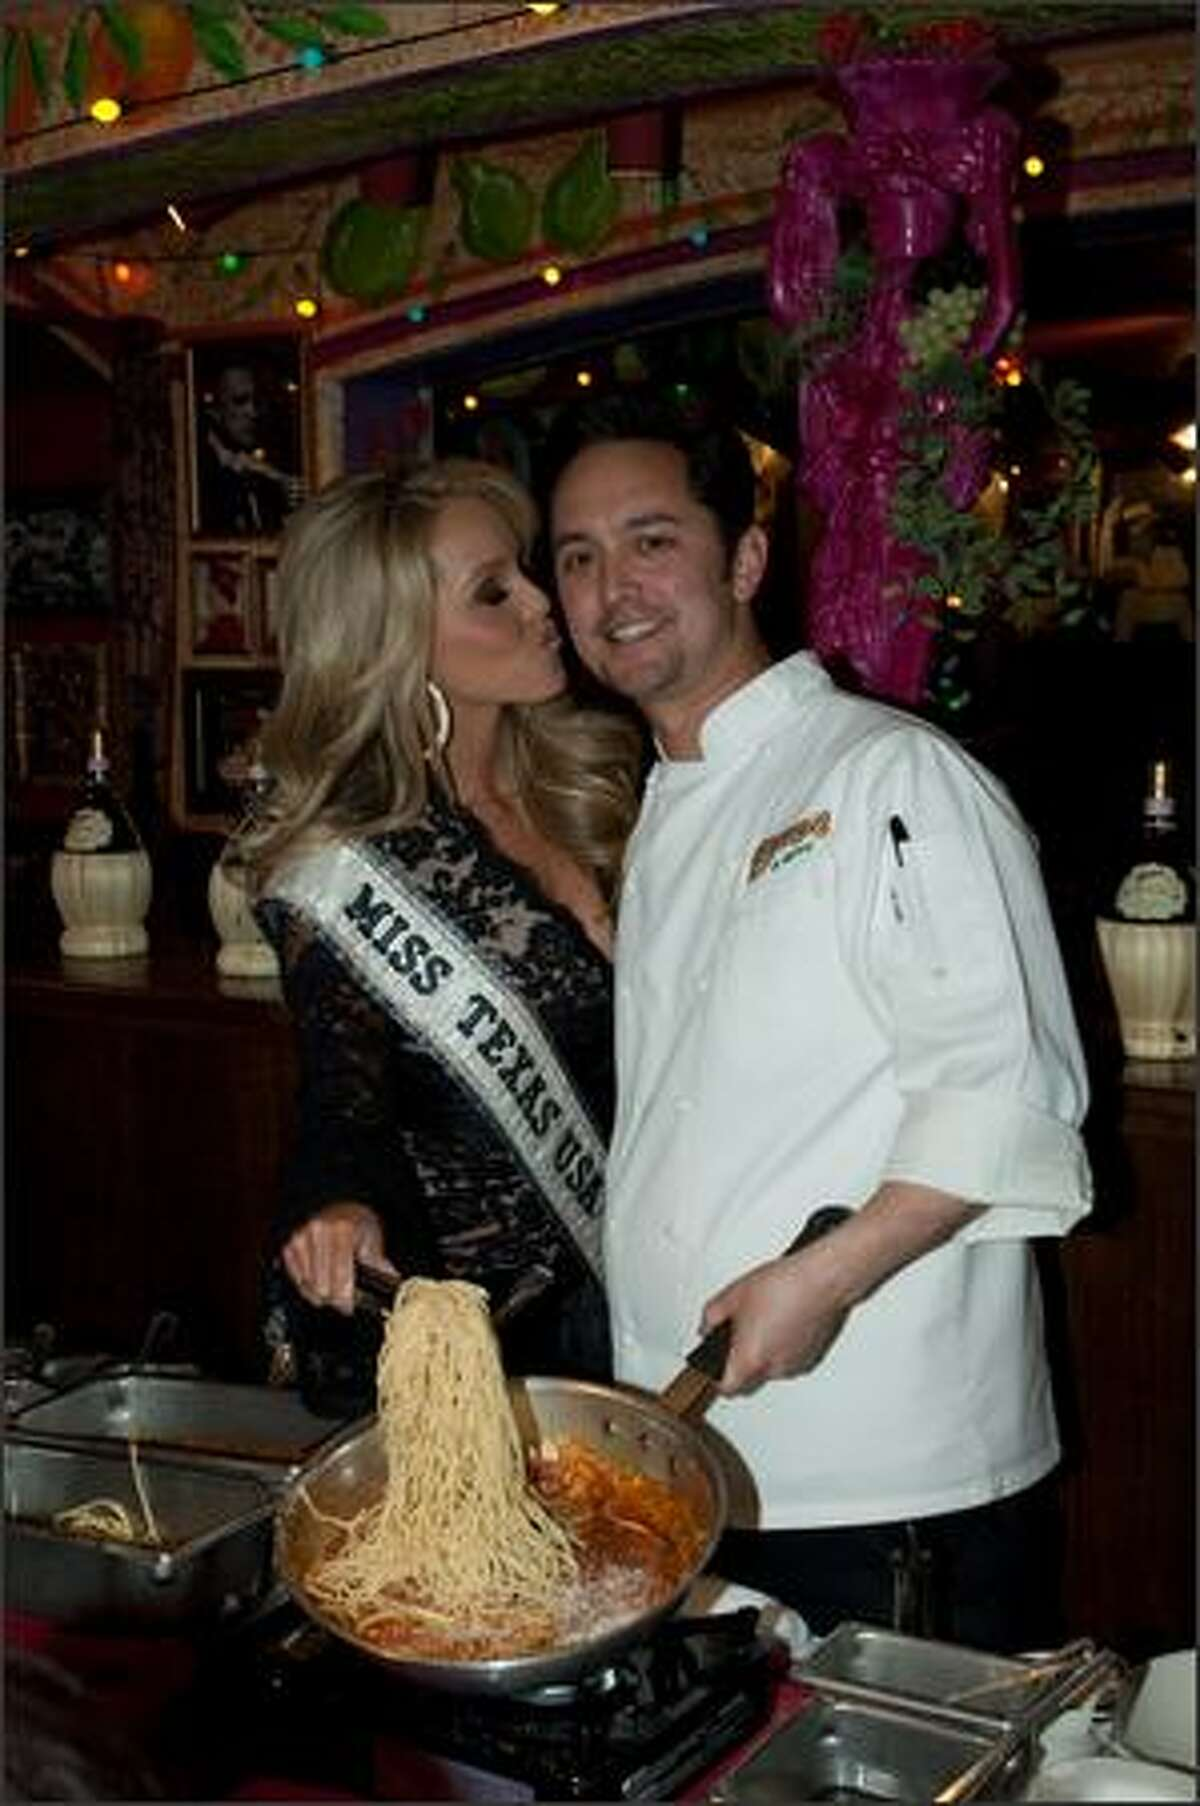 Brooke Daniels, Miss Texas USA 2009, cooks with Corporate Chef Michael Miyahara at Buca di Beppo.